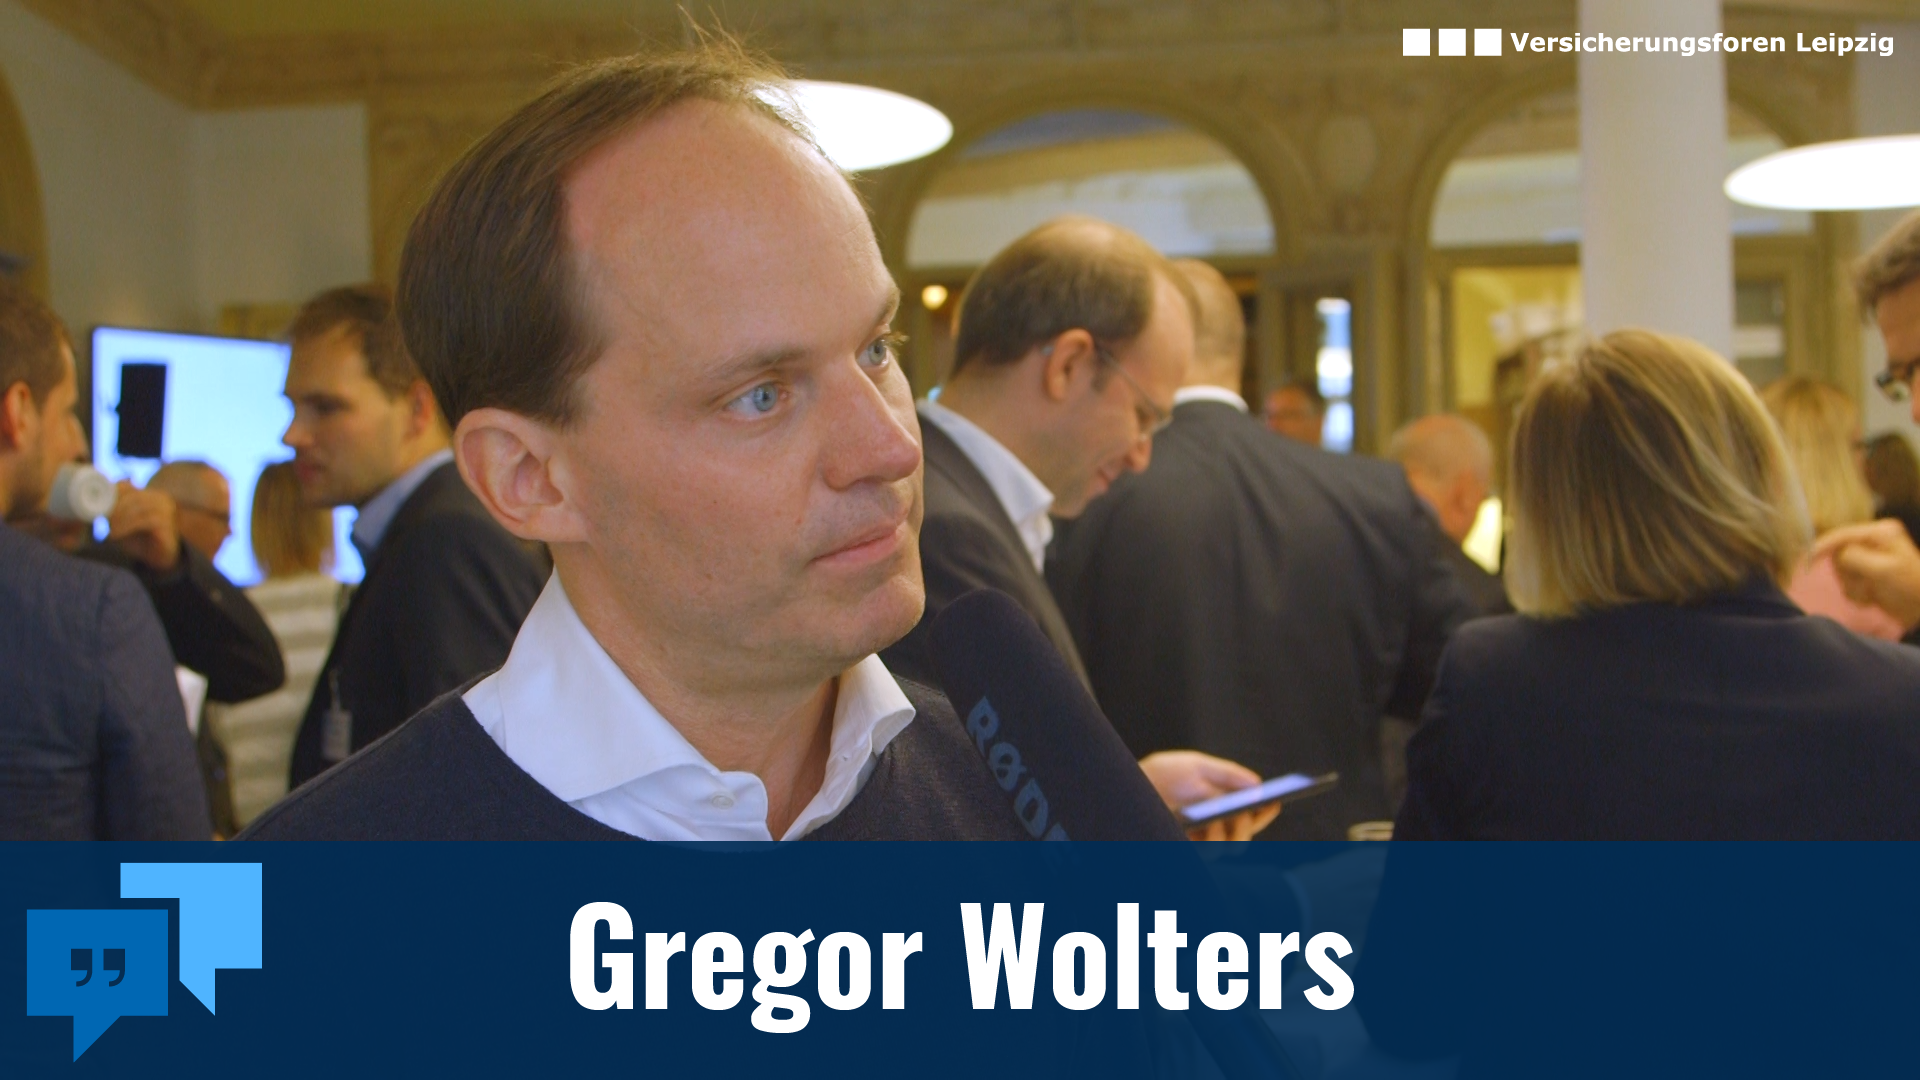 Robo Advisor Scalable Capital: Im Interview mit Gregor Wolters